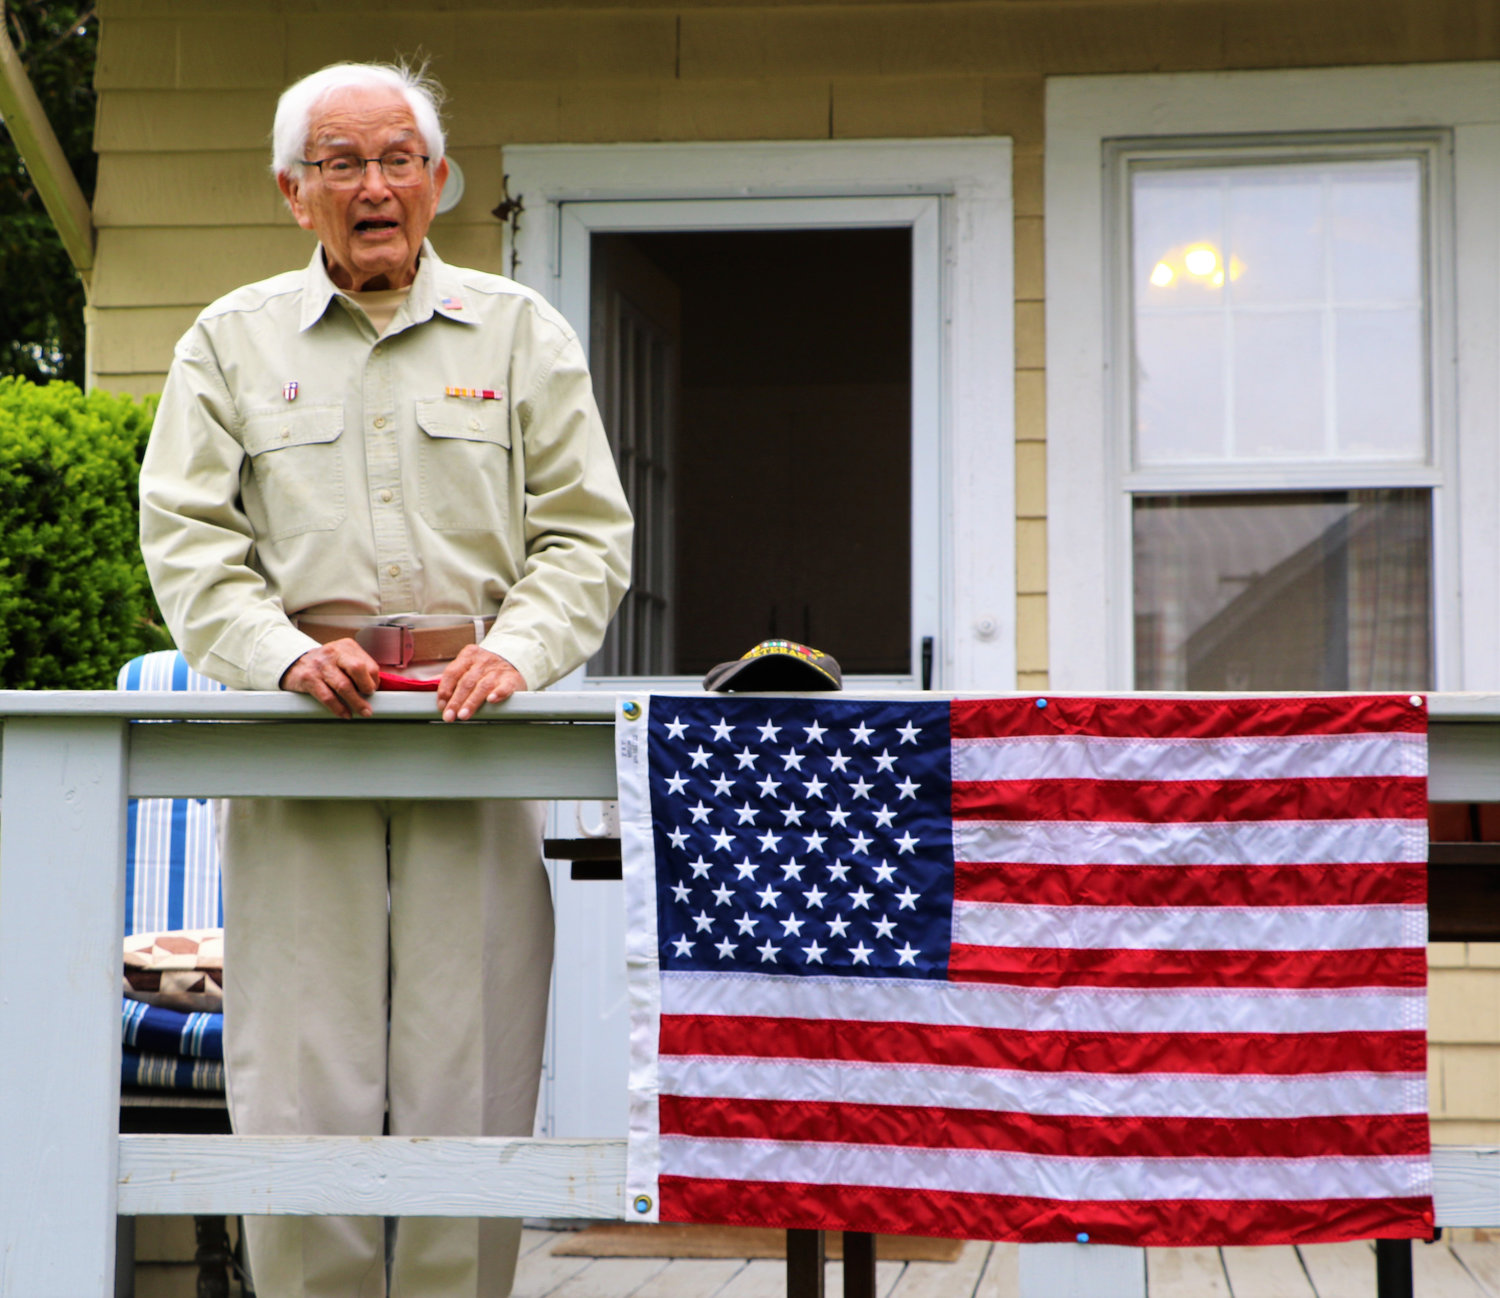 Edward Olvera, a 97-year-old Baldwin resident and World War II veteran, was honored by an intimate ceremony on Memorial Day May 25.